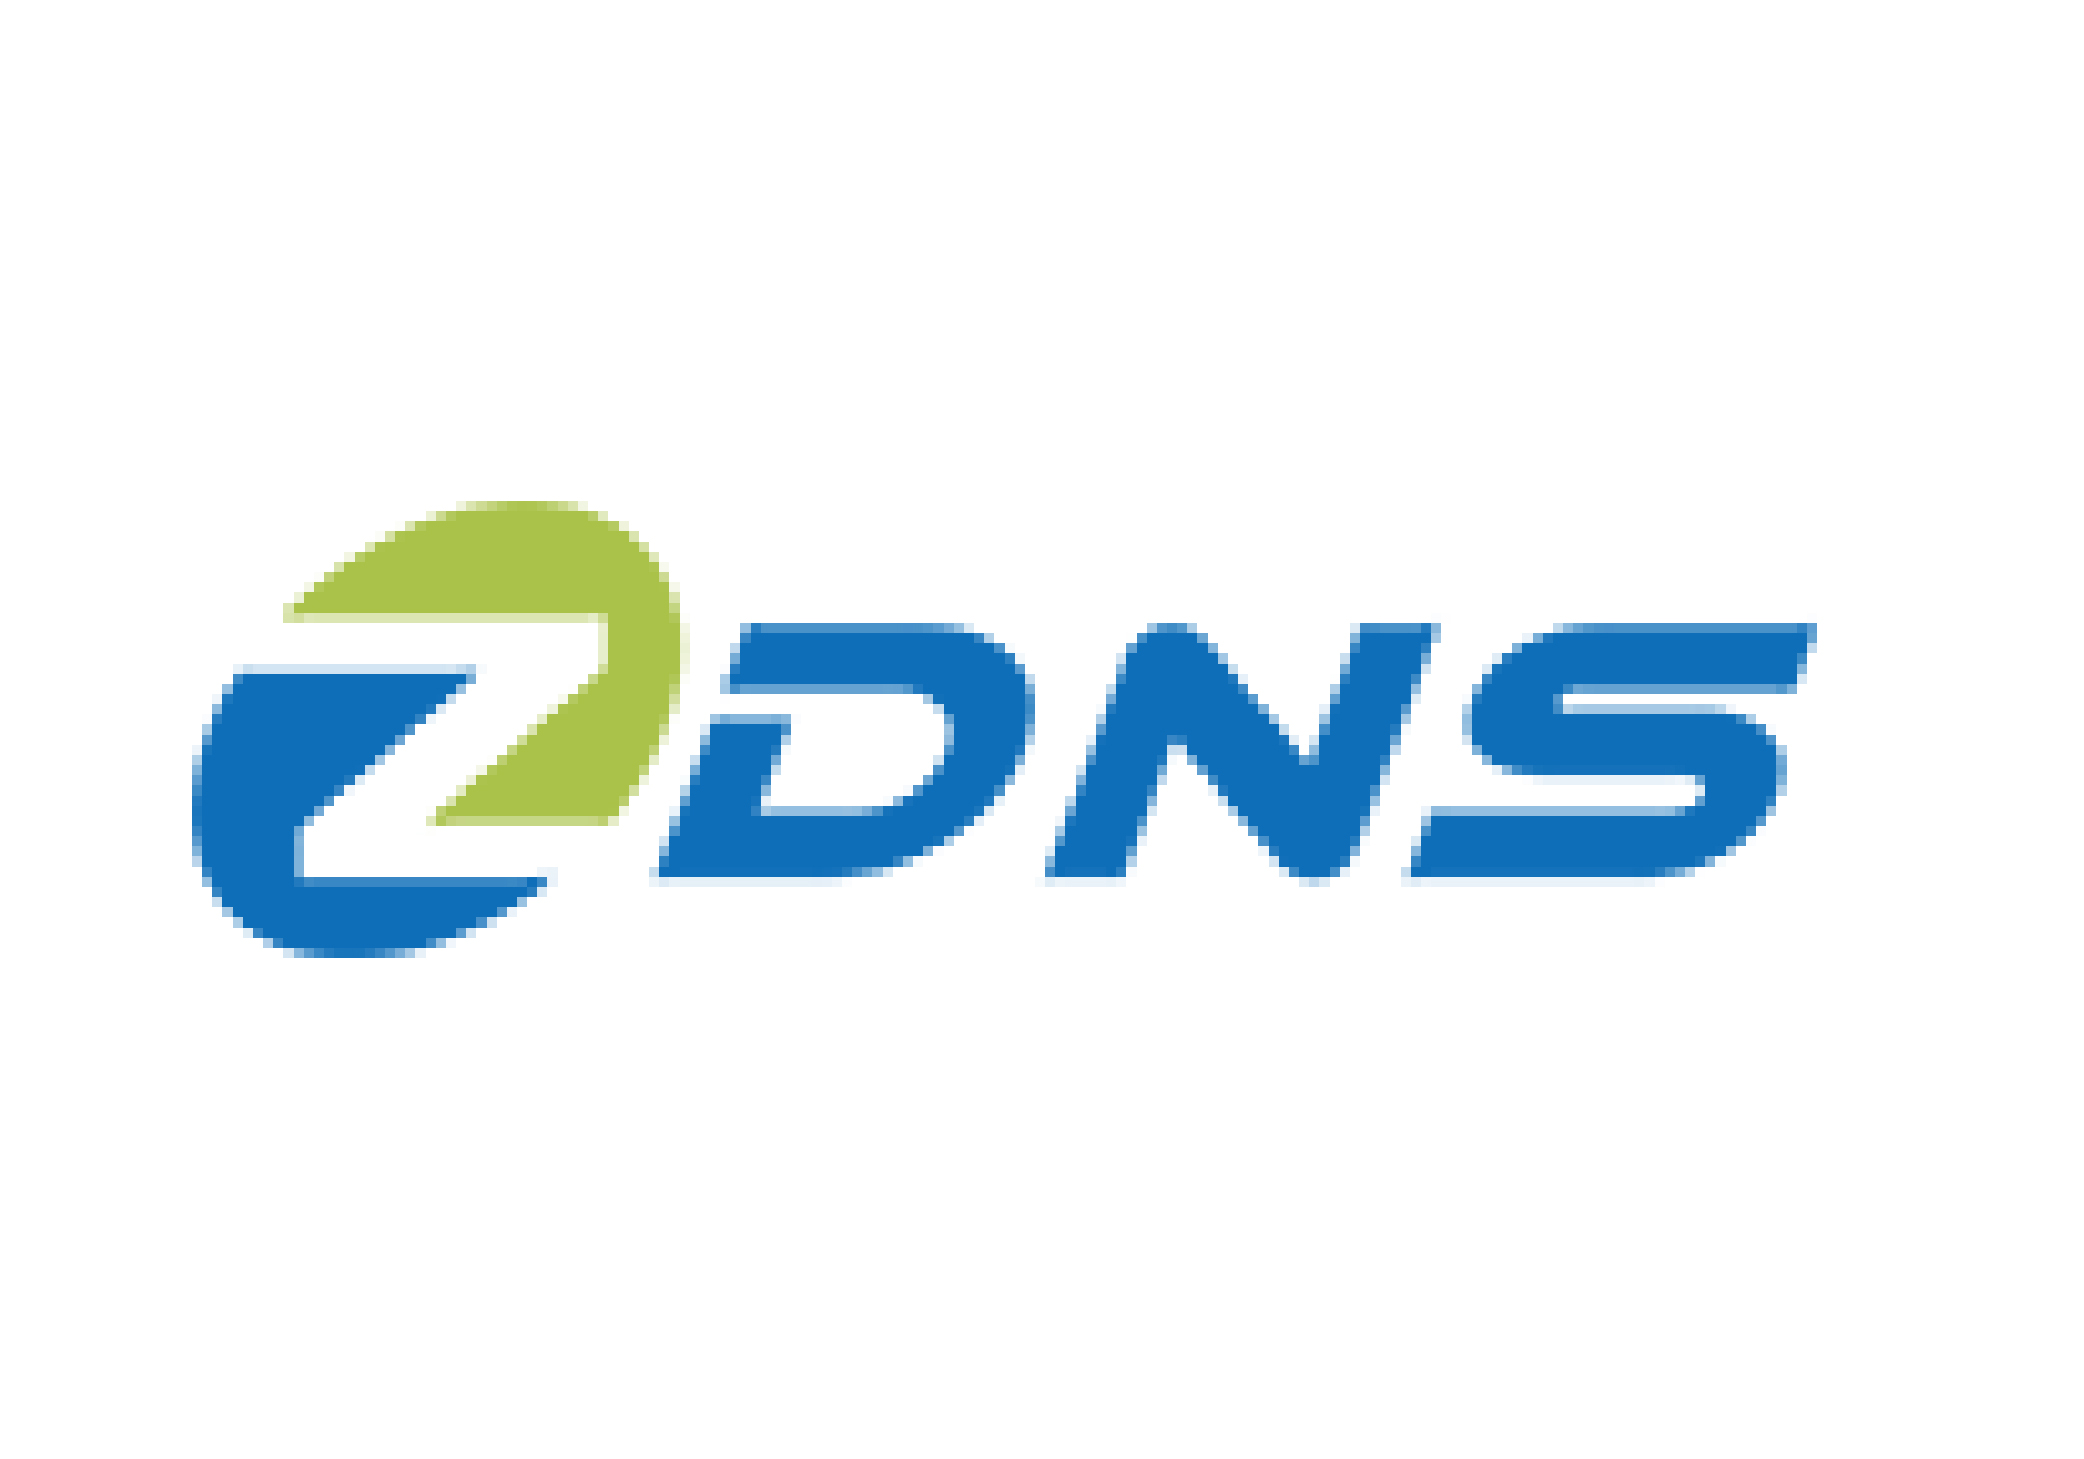 Internet Domain Name System Beijing Engineering Reasearch Center LLC (ZDNS)